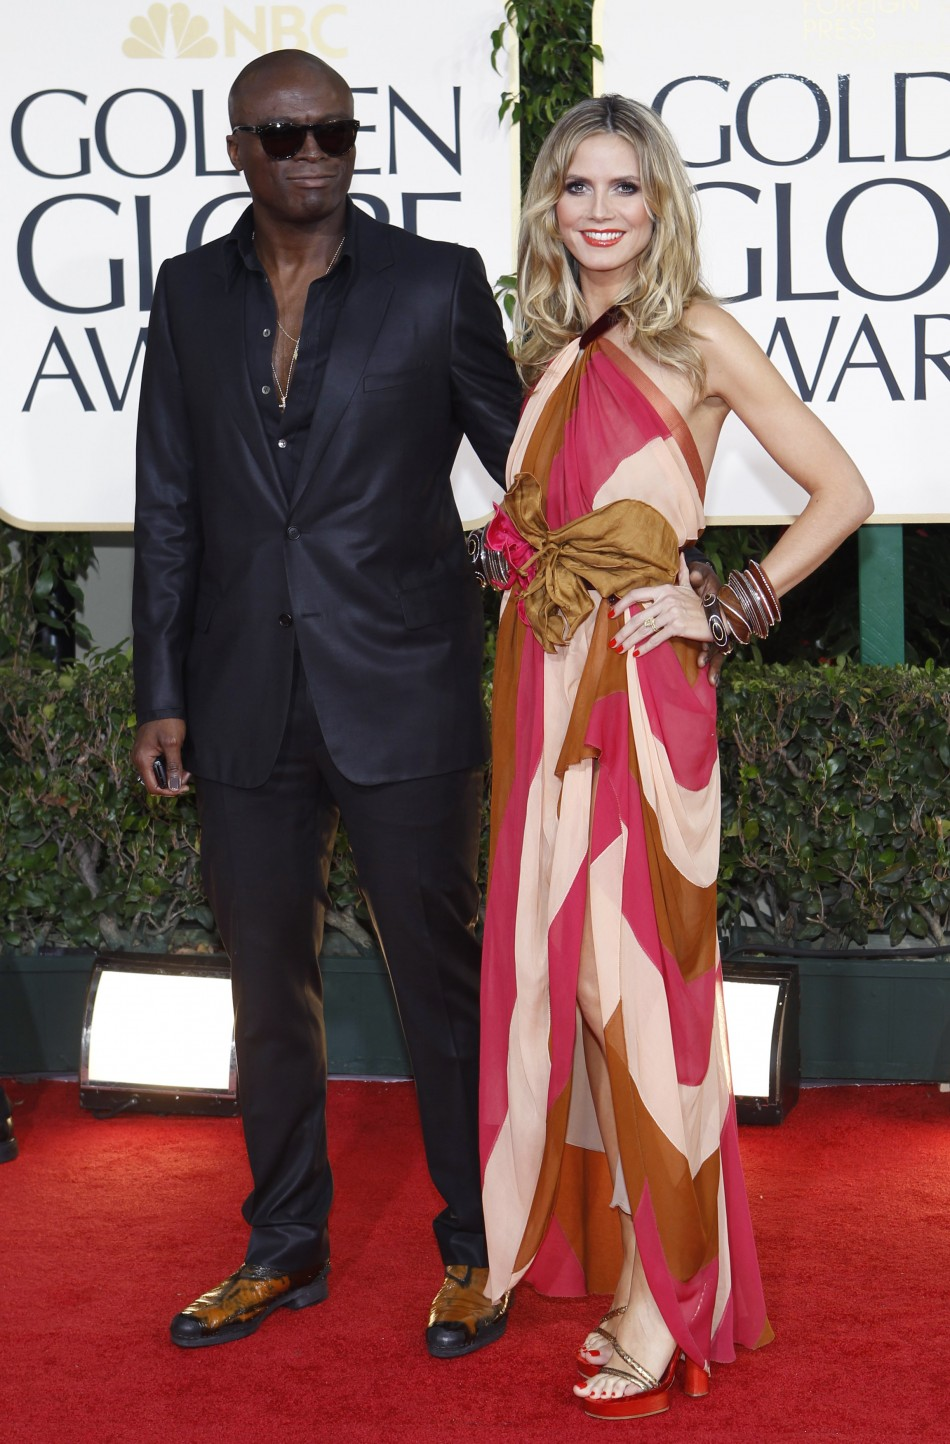 Seal and Heidi Klum arrive at the 68th annual Golden Globe Awards in Beverly Hills